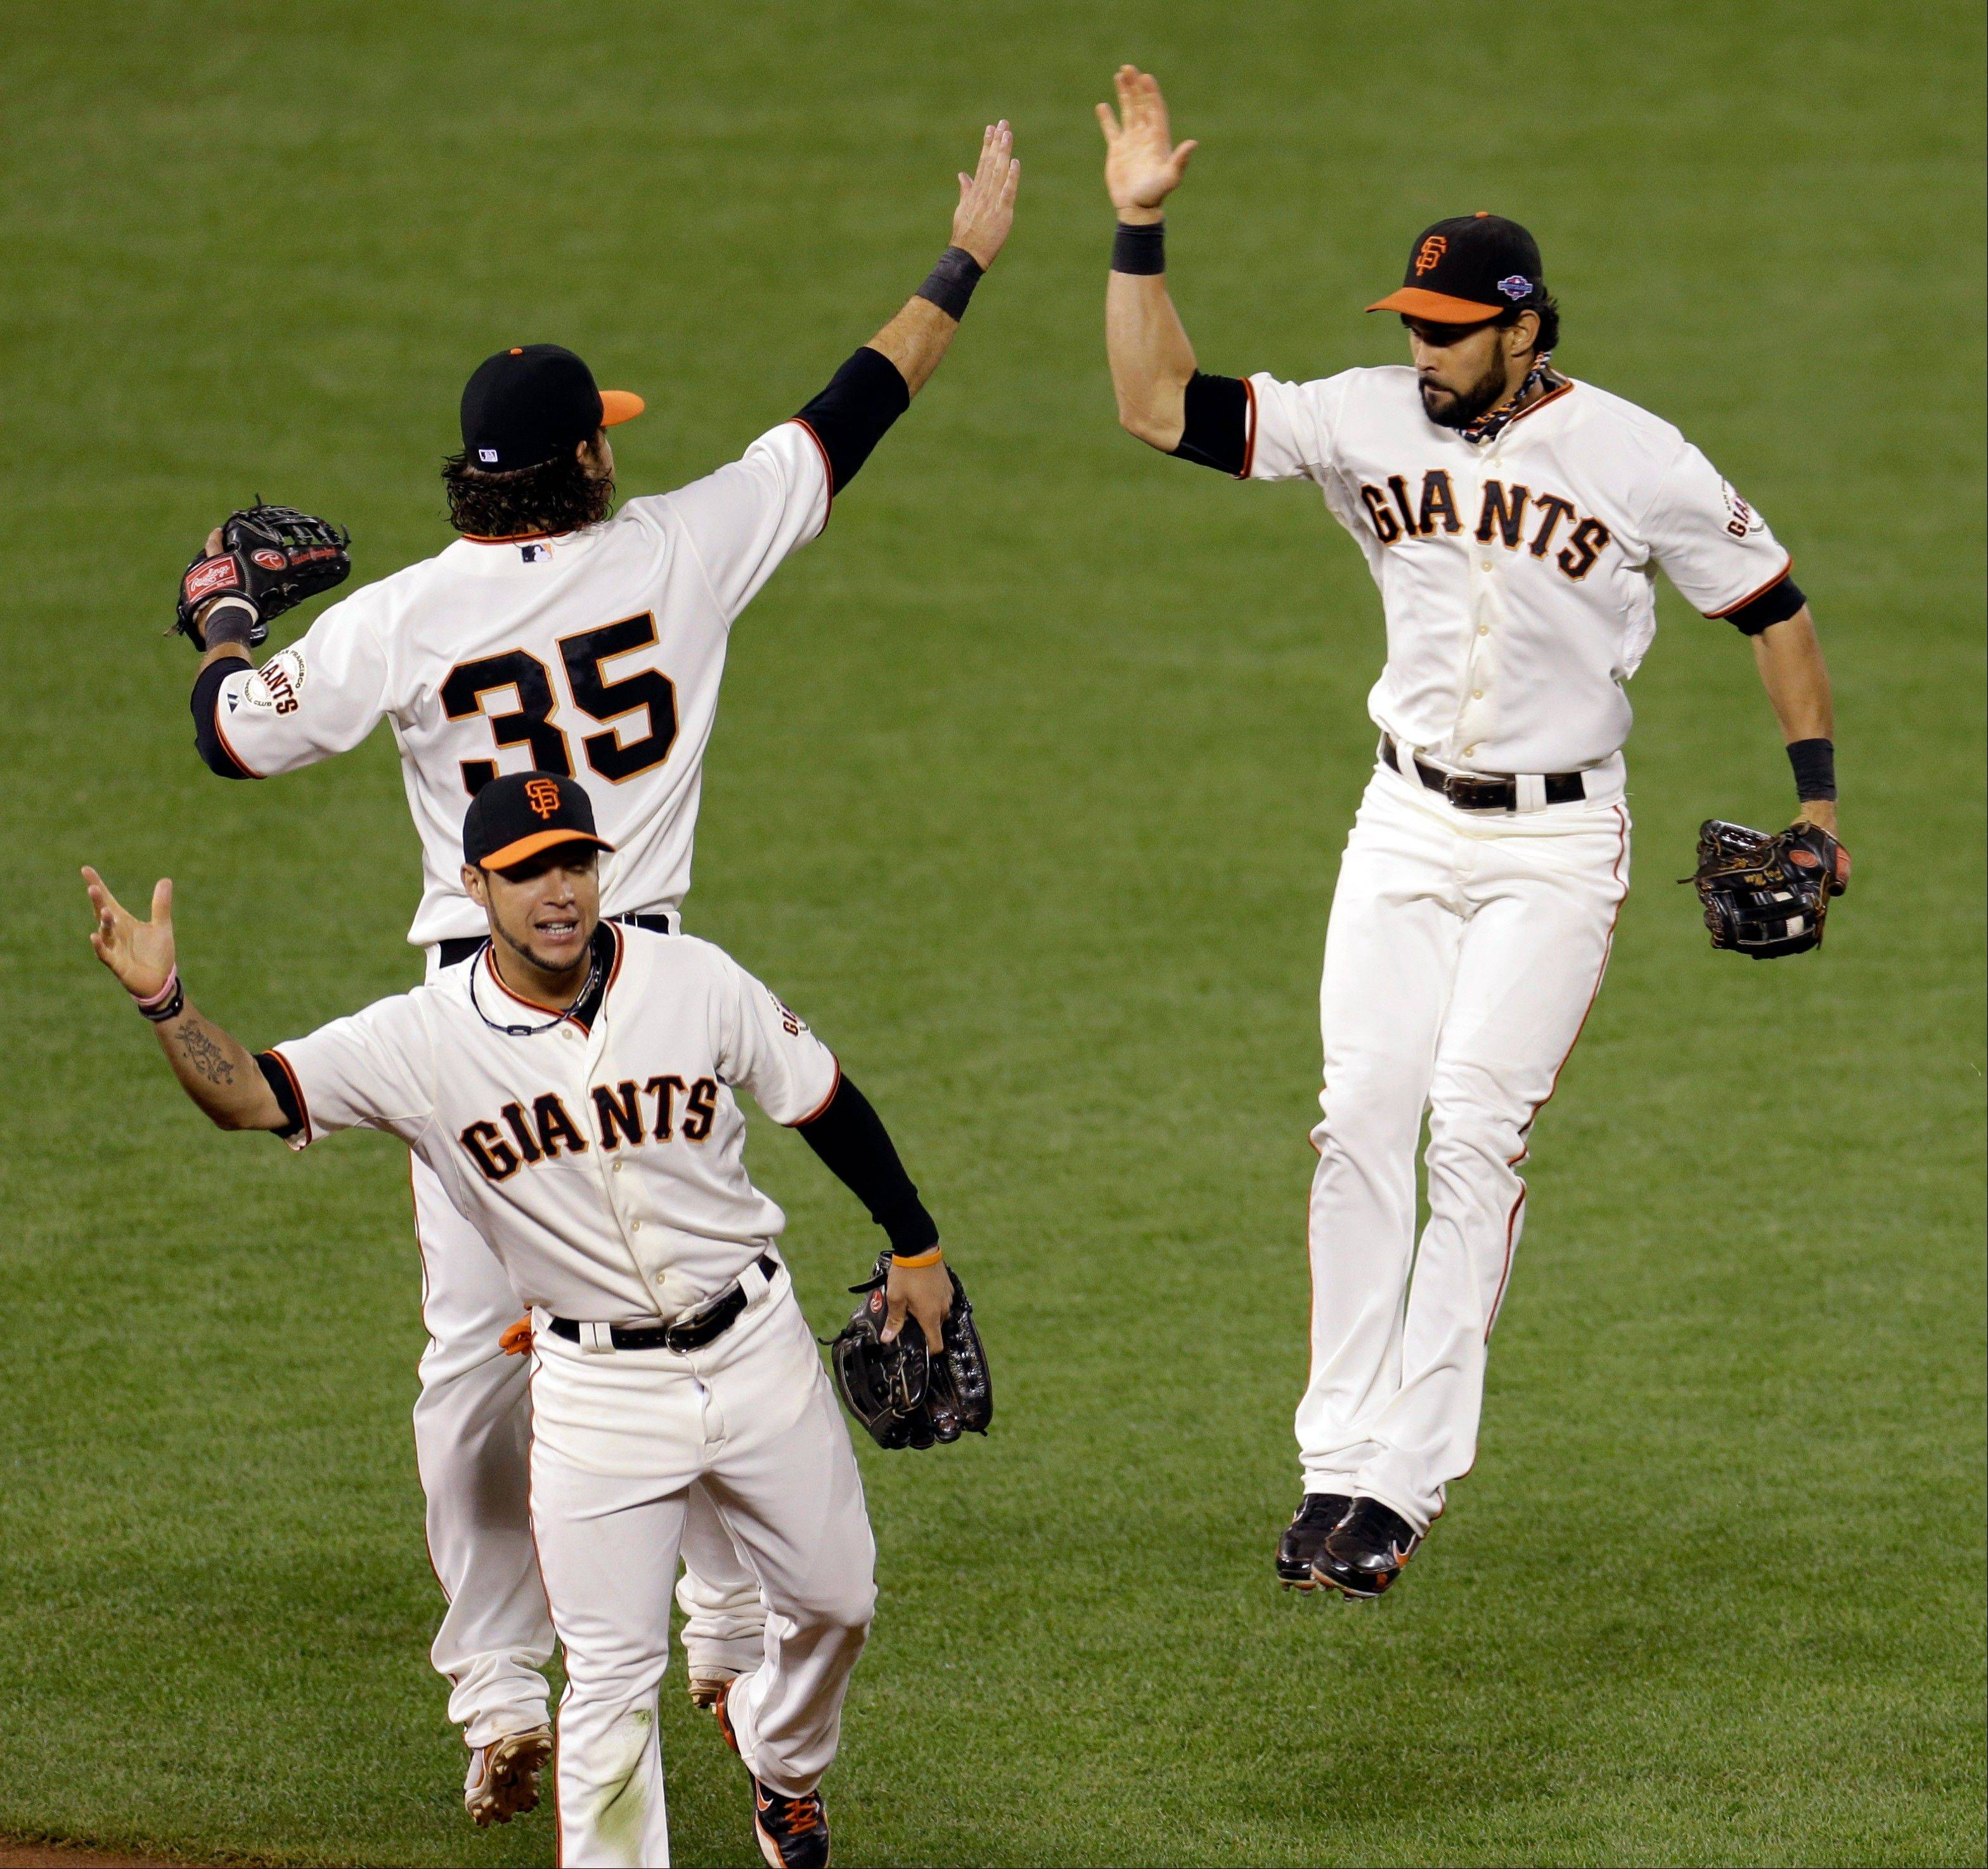 The Giants' Brandon Crawford (35), Angel Pagan, right, and Gregor Blanco celebrate winning after Game 6 of the National League championship series against the St. Louis Cardinals on Sunday in San Francisco.